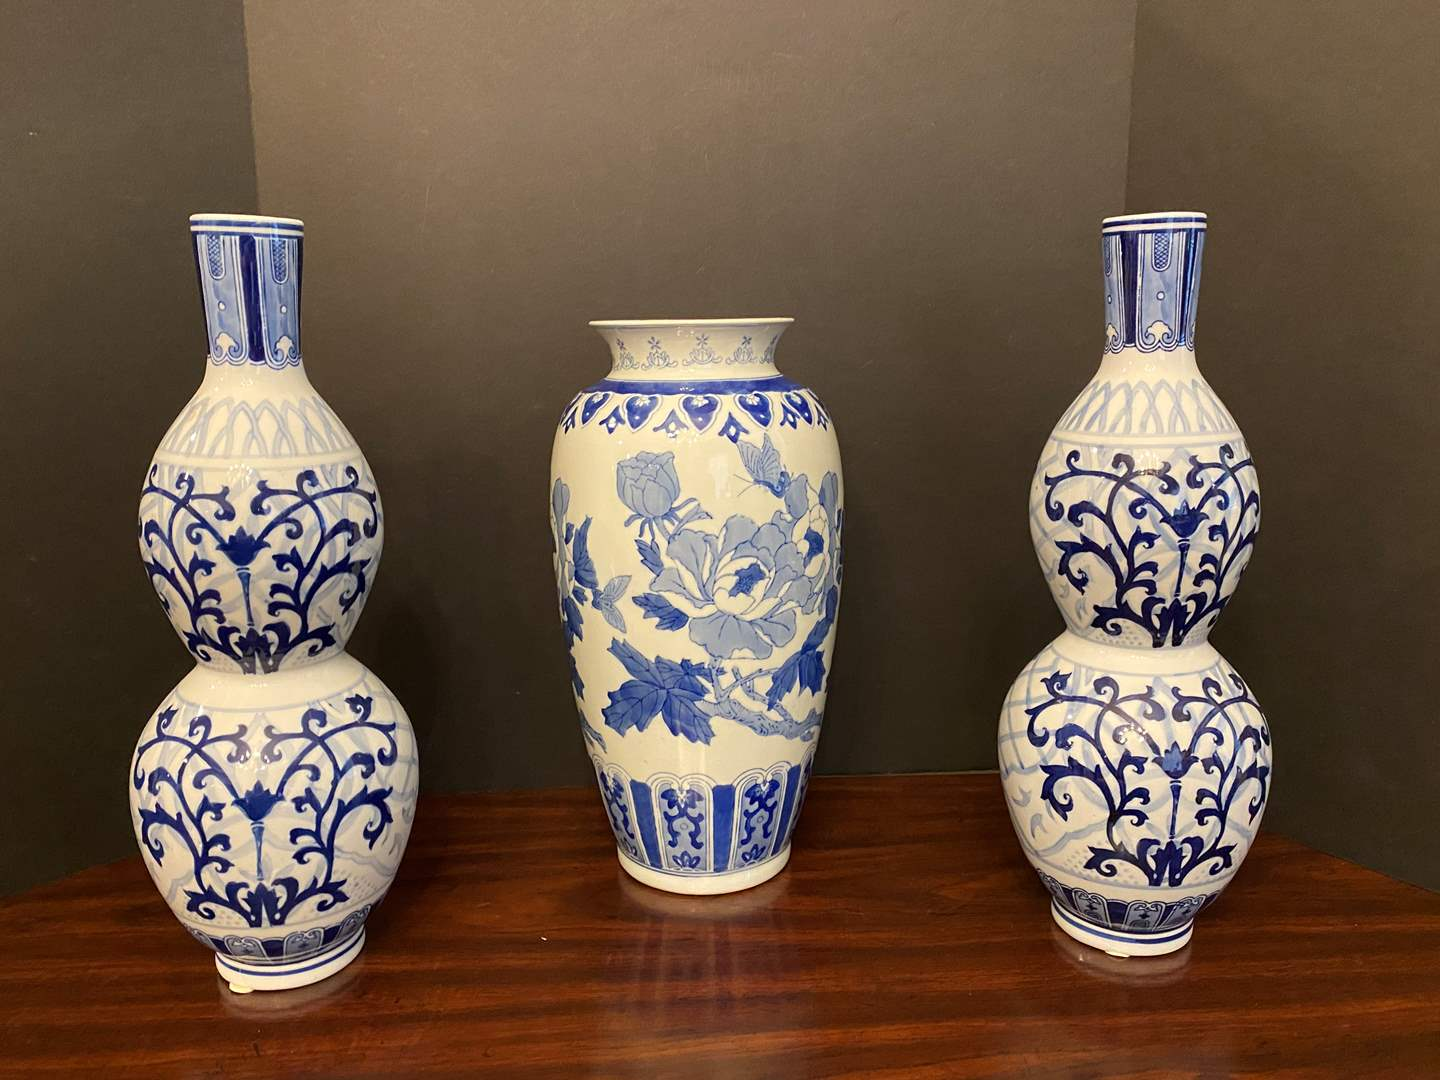 "Lot # 31 - Three Delft Blue & White Porcelain - 16"" & 14"" Tall  (main image)"